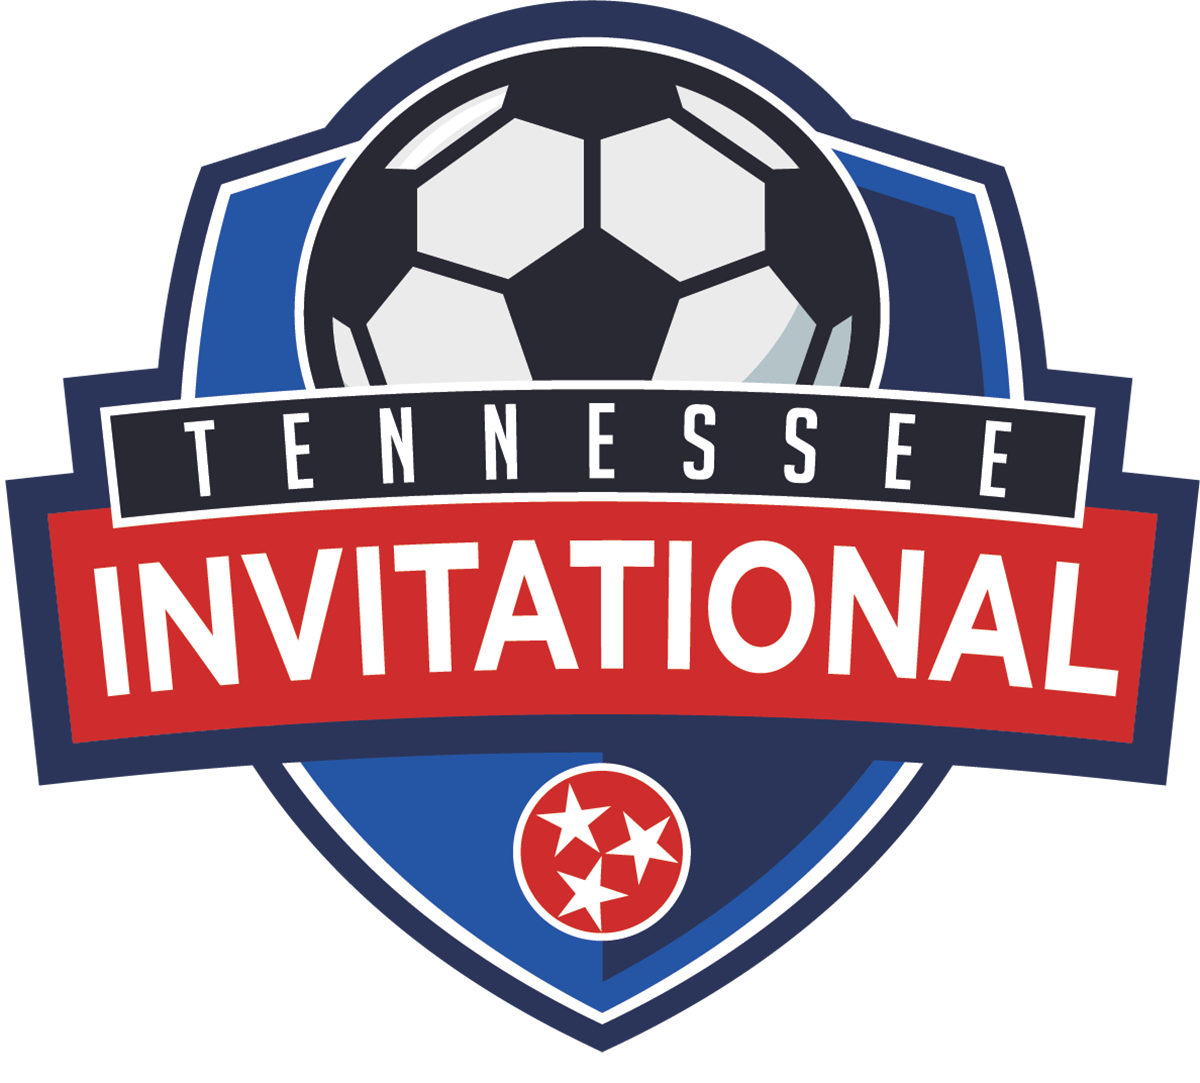 Details tennessee soccer club the tennessee invitational tni is an event for all teams from premier to select levels and wants to welcome you to the middle tennessee area publicscrutiny Gallery